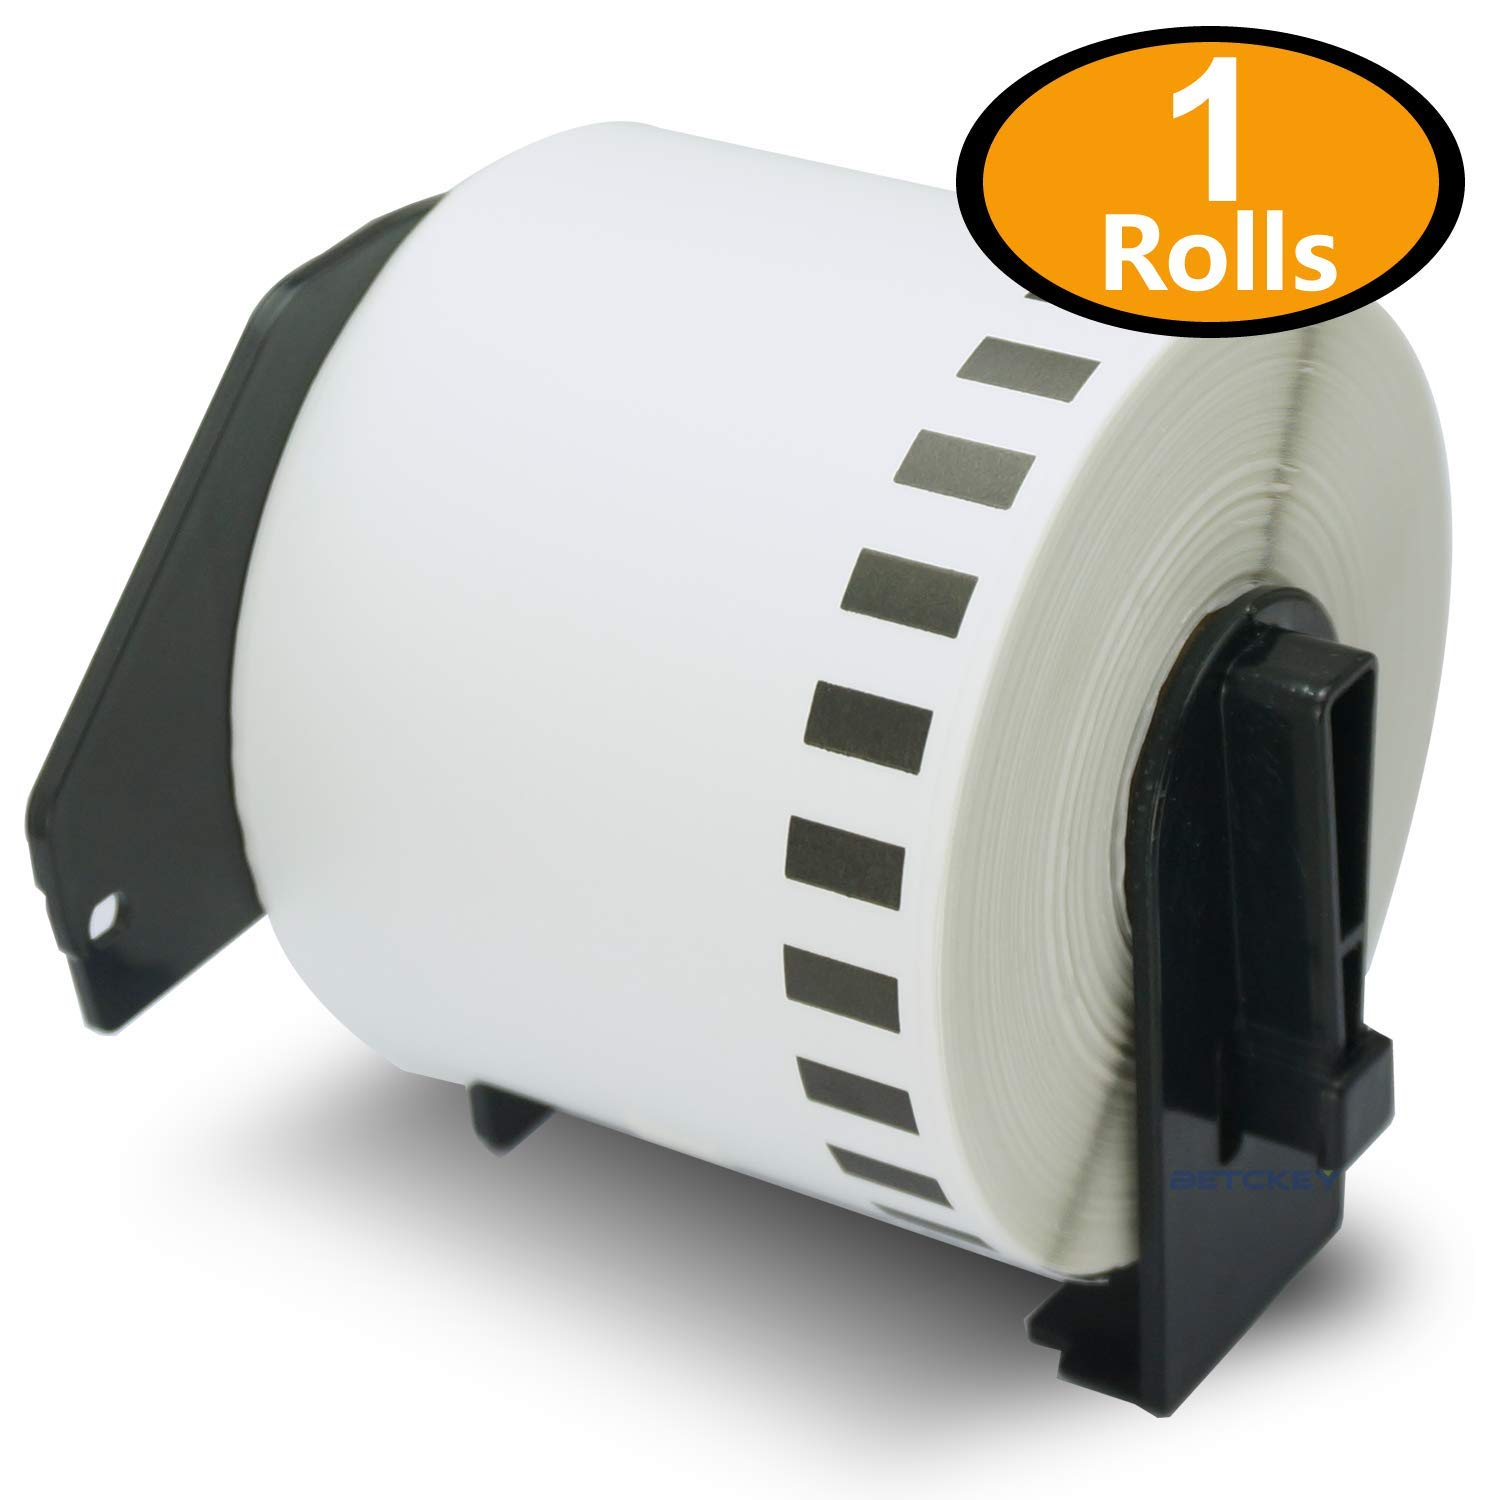 1 Rolls Brother-Compatible DK-4205 Removable Continuous Labels Black on White 62mm x 30.48M(2-3/7'' x 100') With Refillable Cartridge